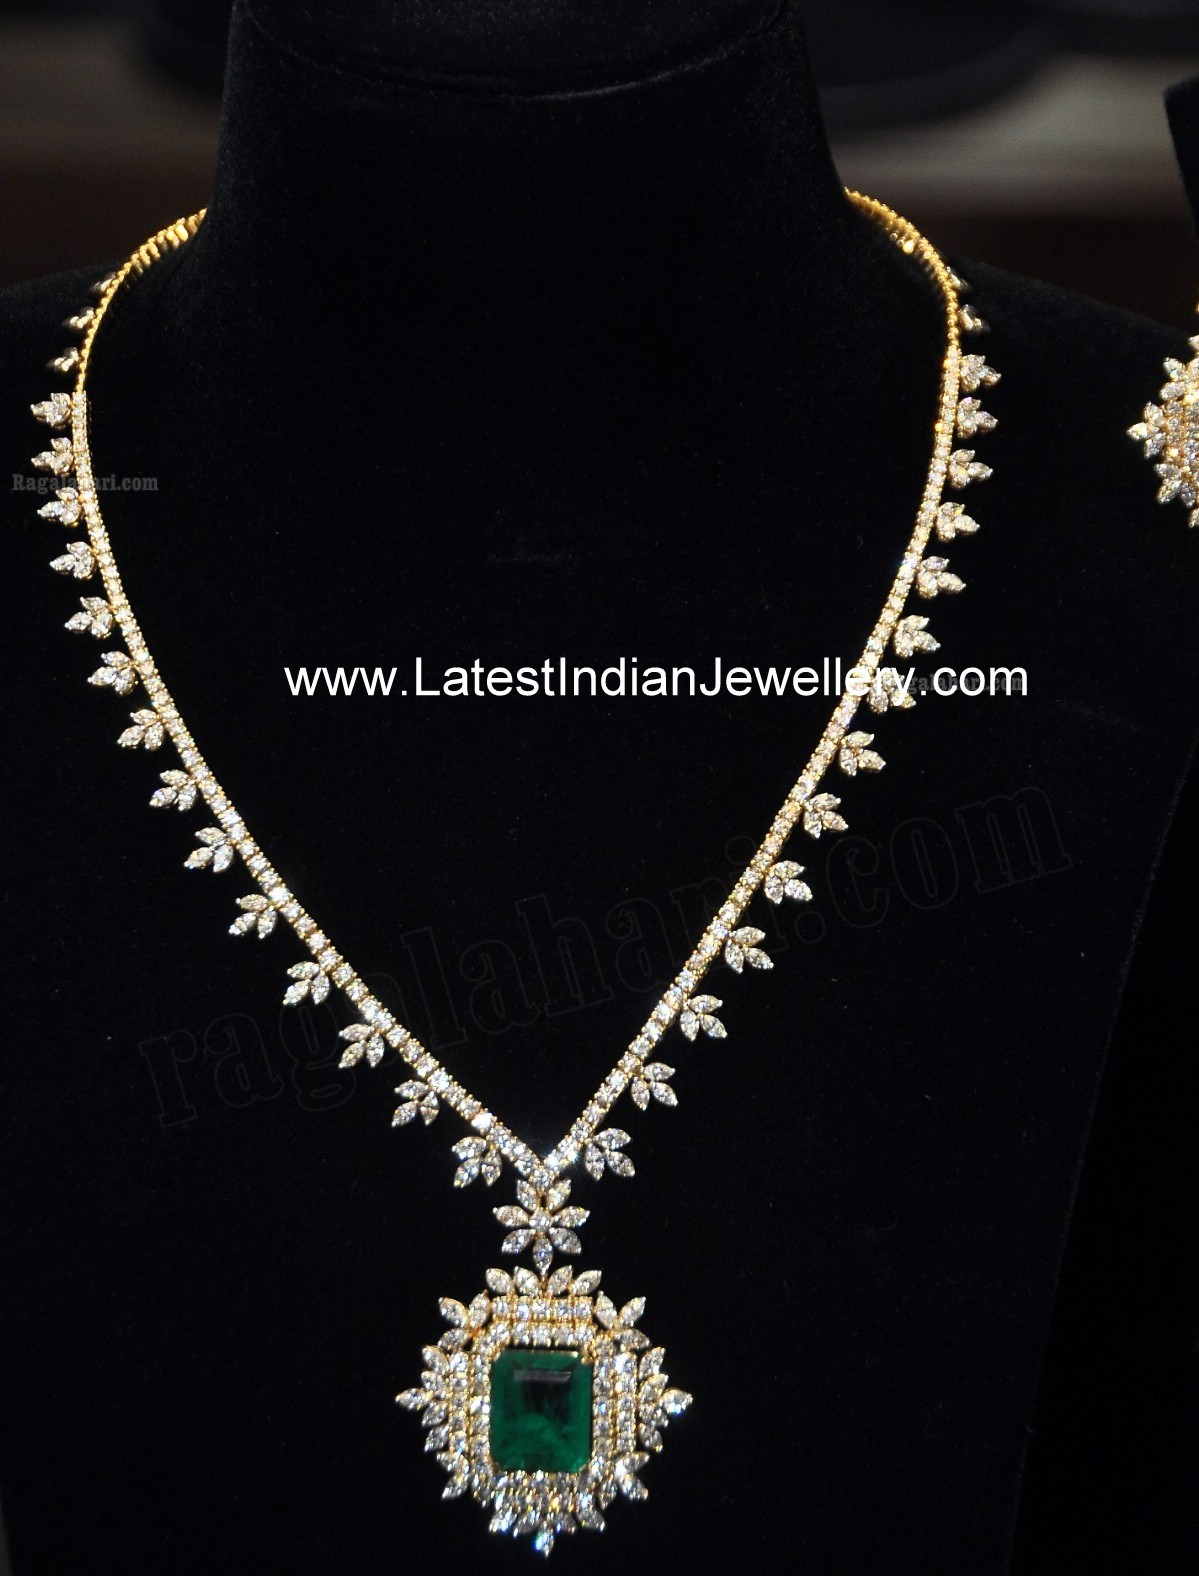 Lovely Designer Indian Diamond Necklace Designs From